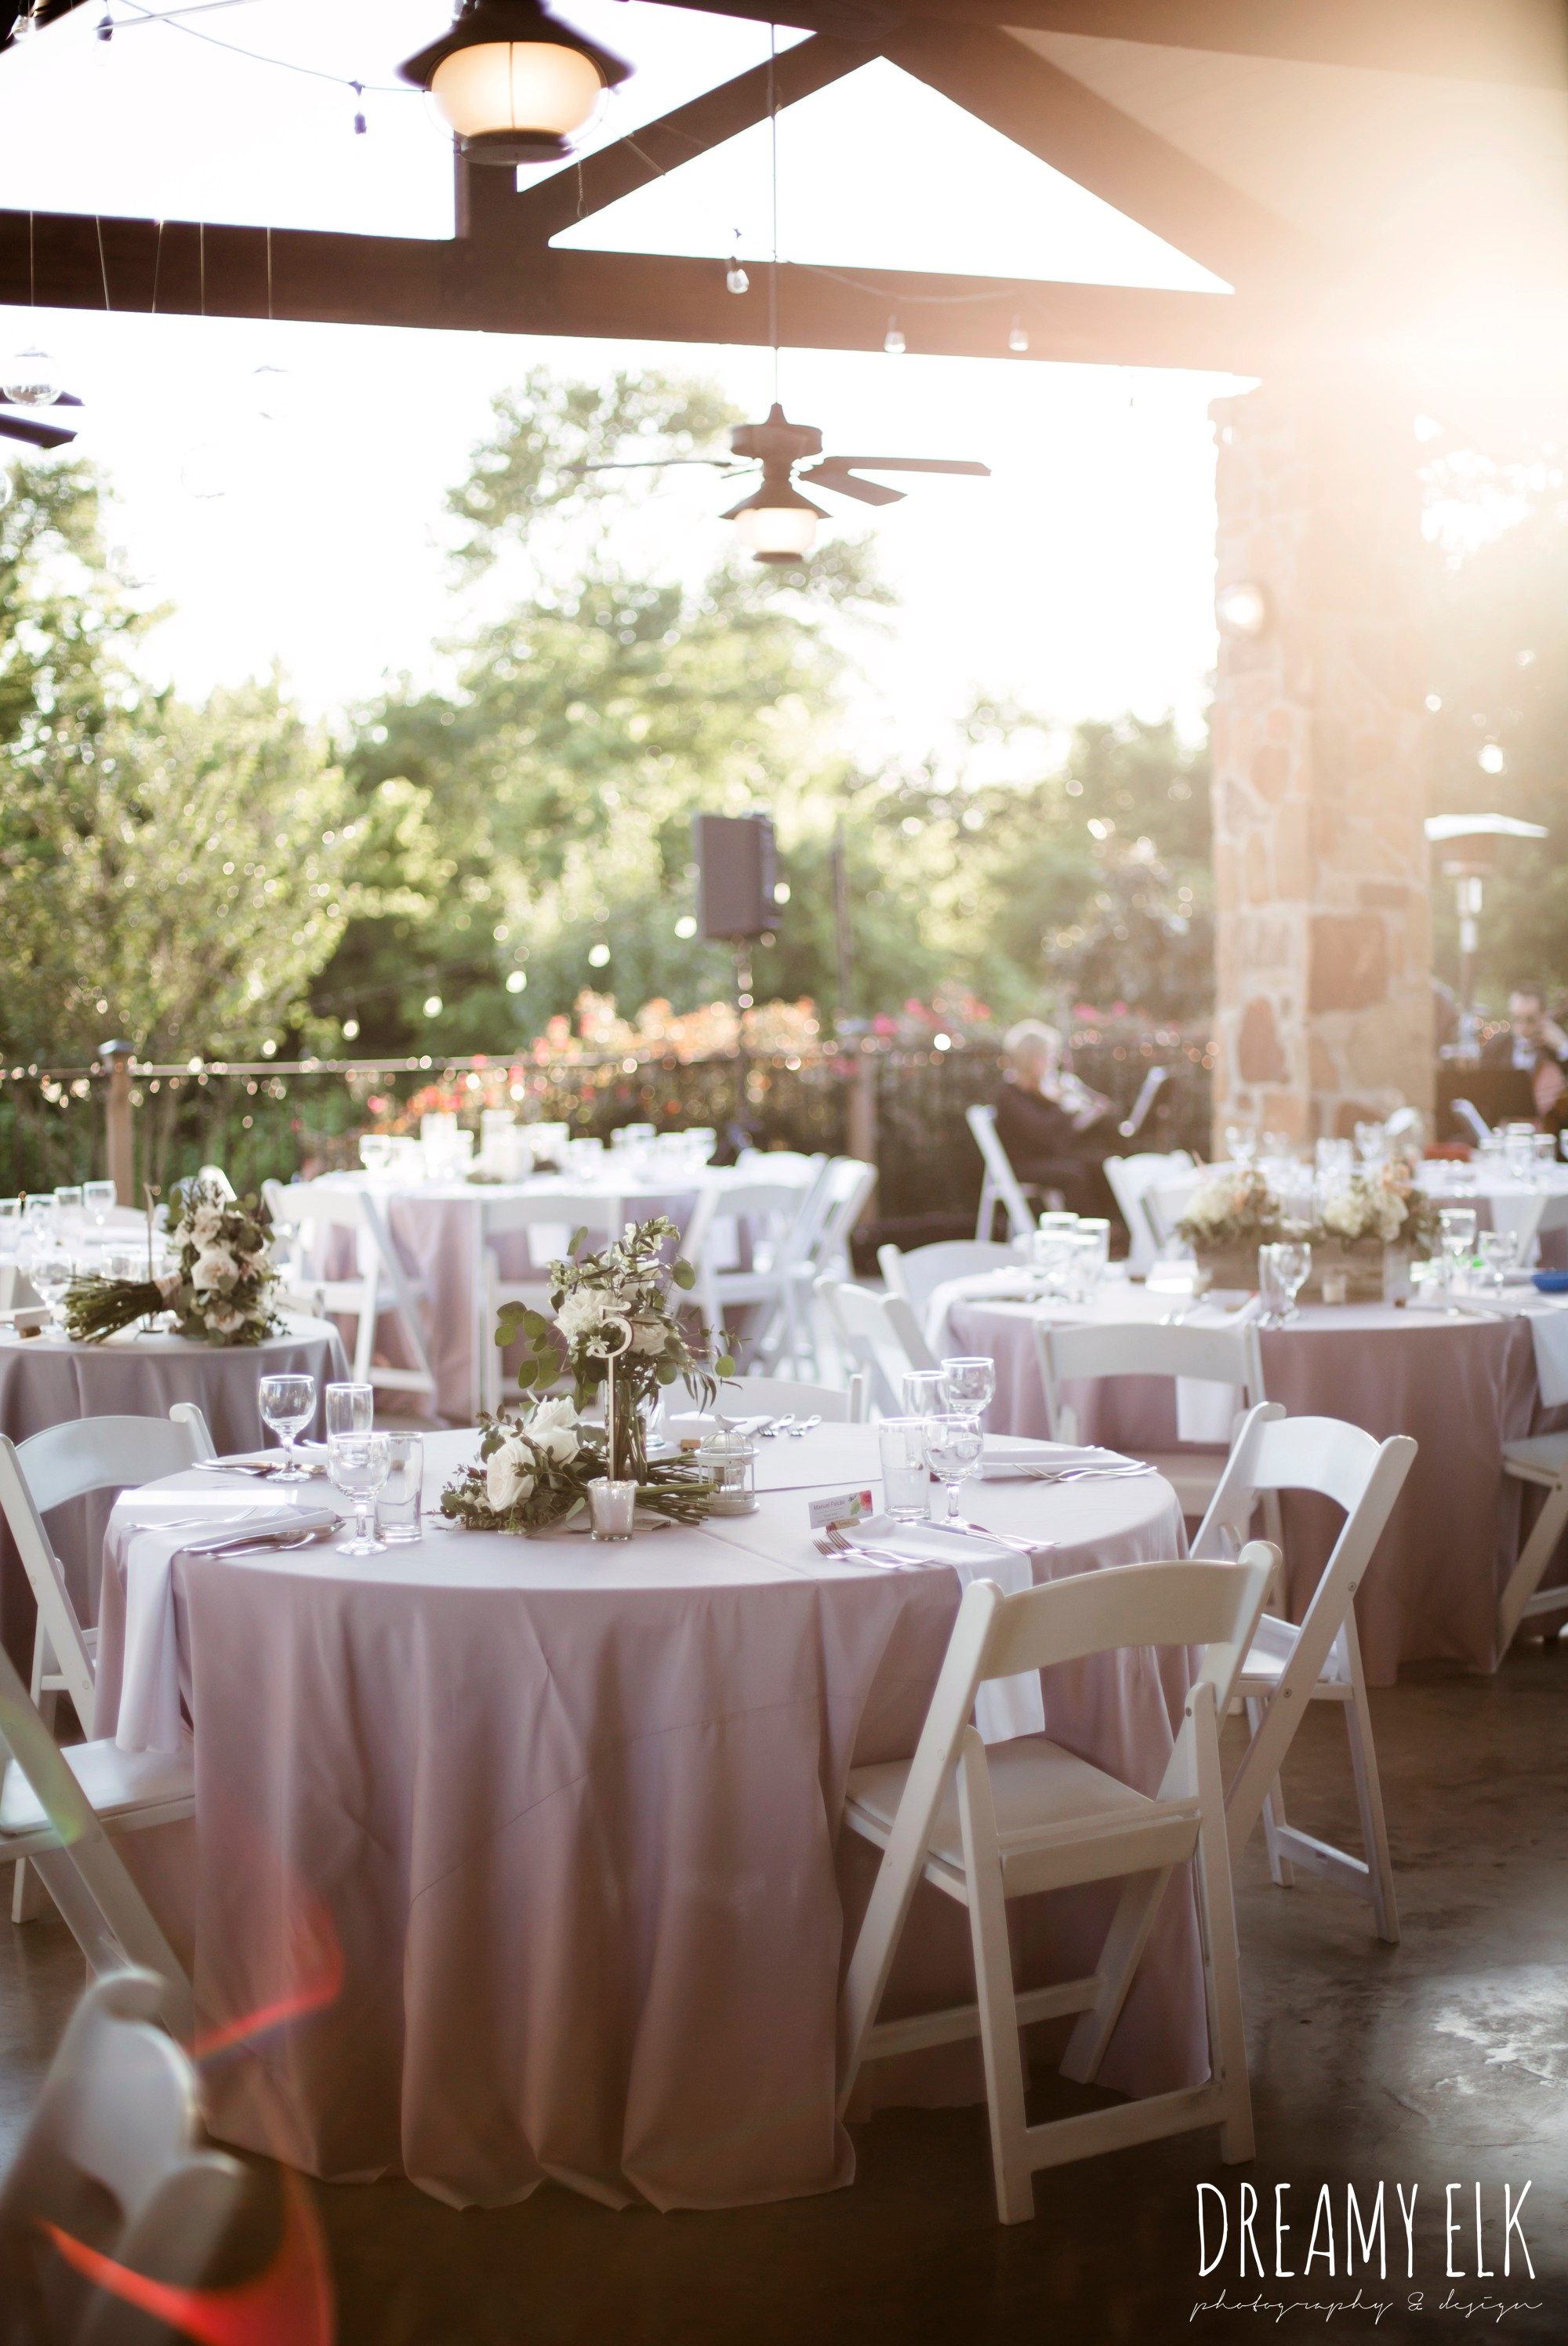 unforgettable floral, white and green succulent table centerpieces, details party rentals, outdoor april spring wedding photo, double creek crossing, college station, texas, austin wedding photographer {dreamy elk photography and design}